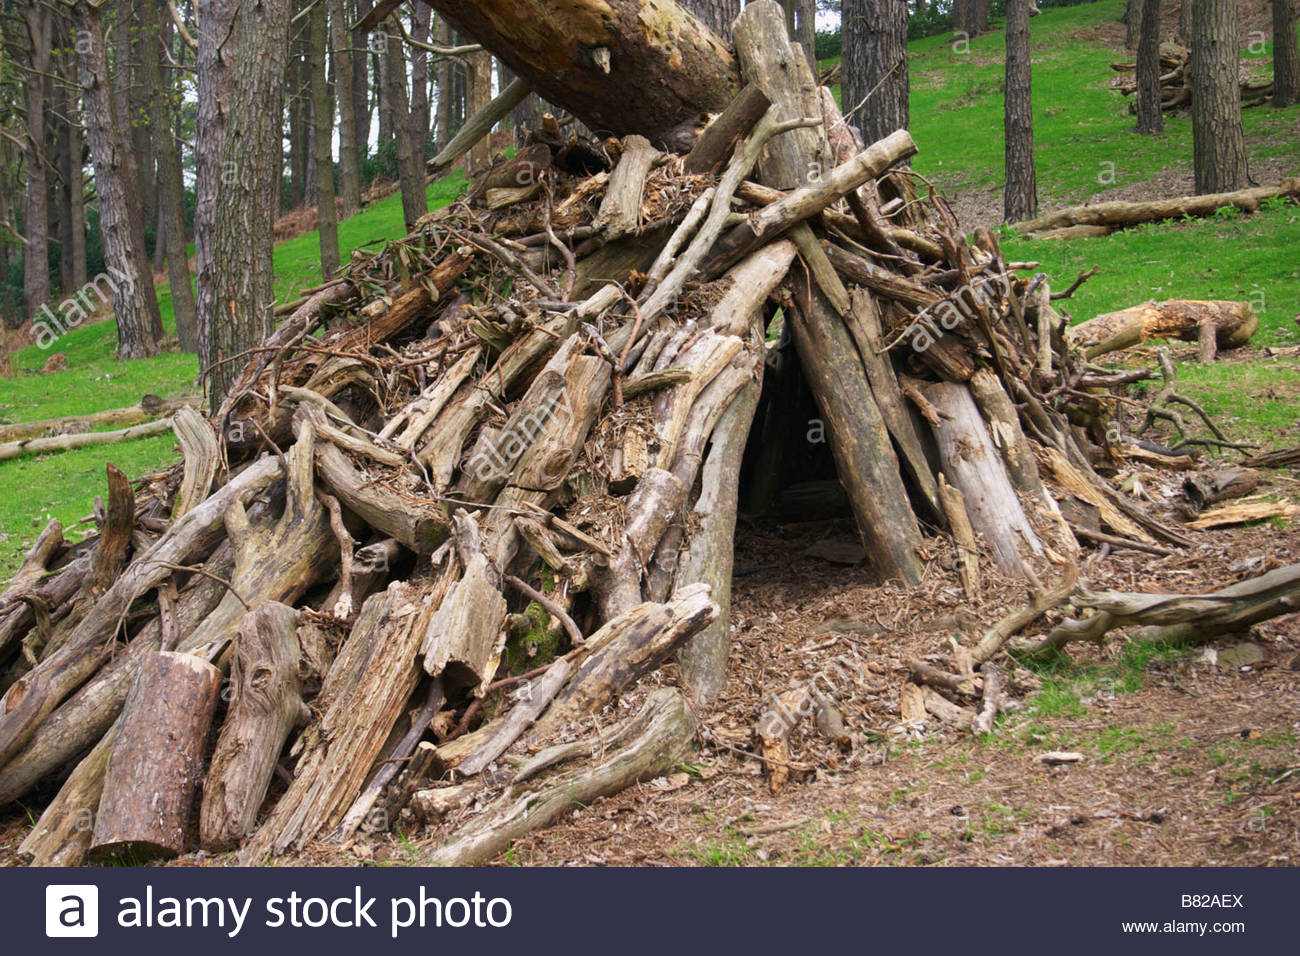 Tent With Shelter Trees : Alternative living eco friendly tent made from trees